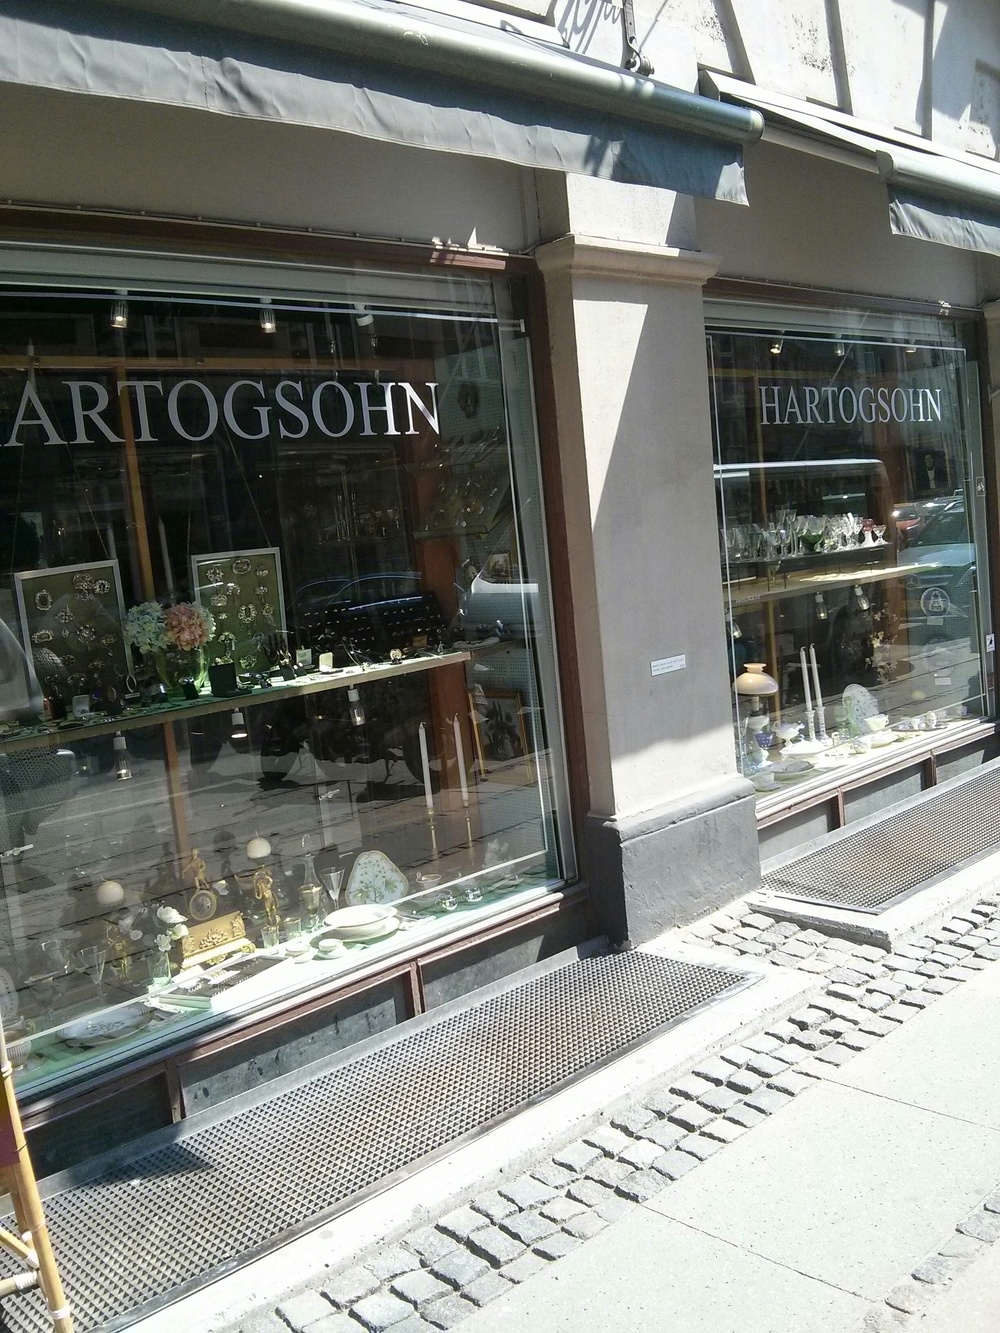 hartogsohn antik ( http://hartogsohn.dk/ ), one of the old and very fine antik shops in copenhagen, still going strong.